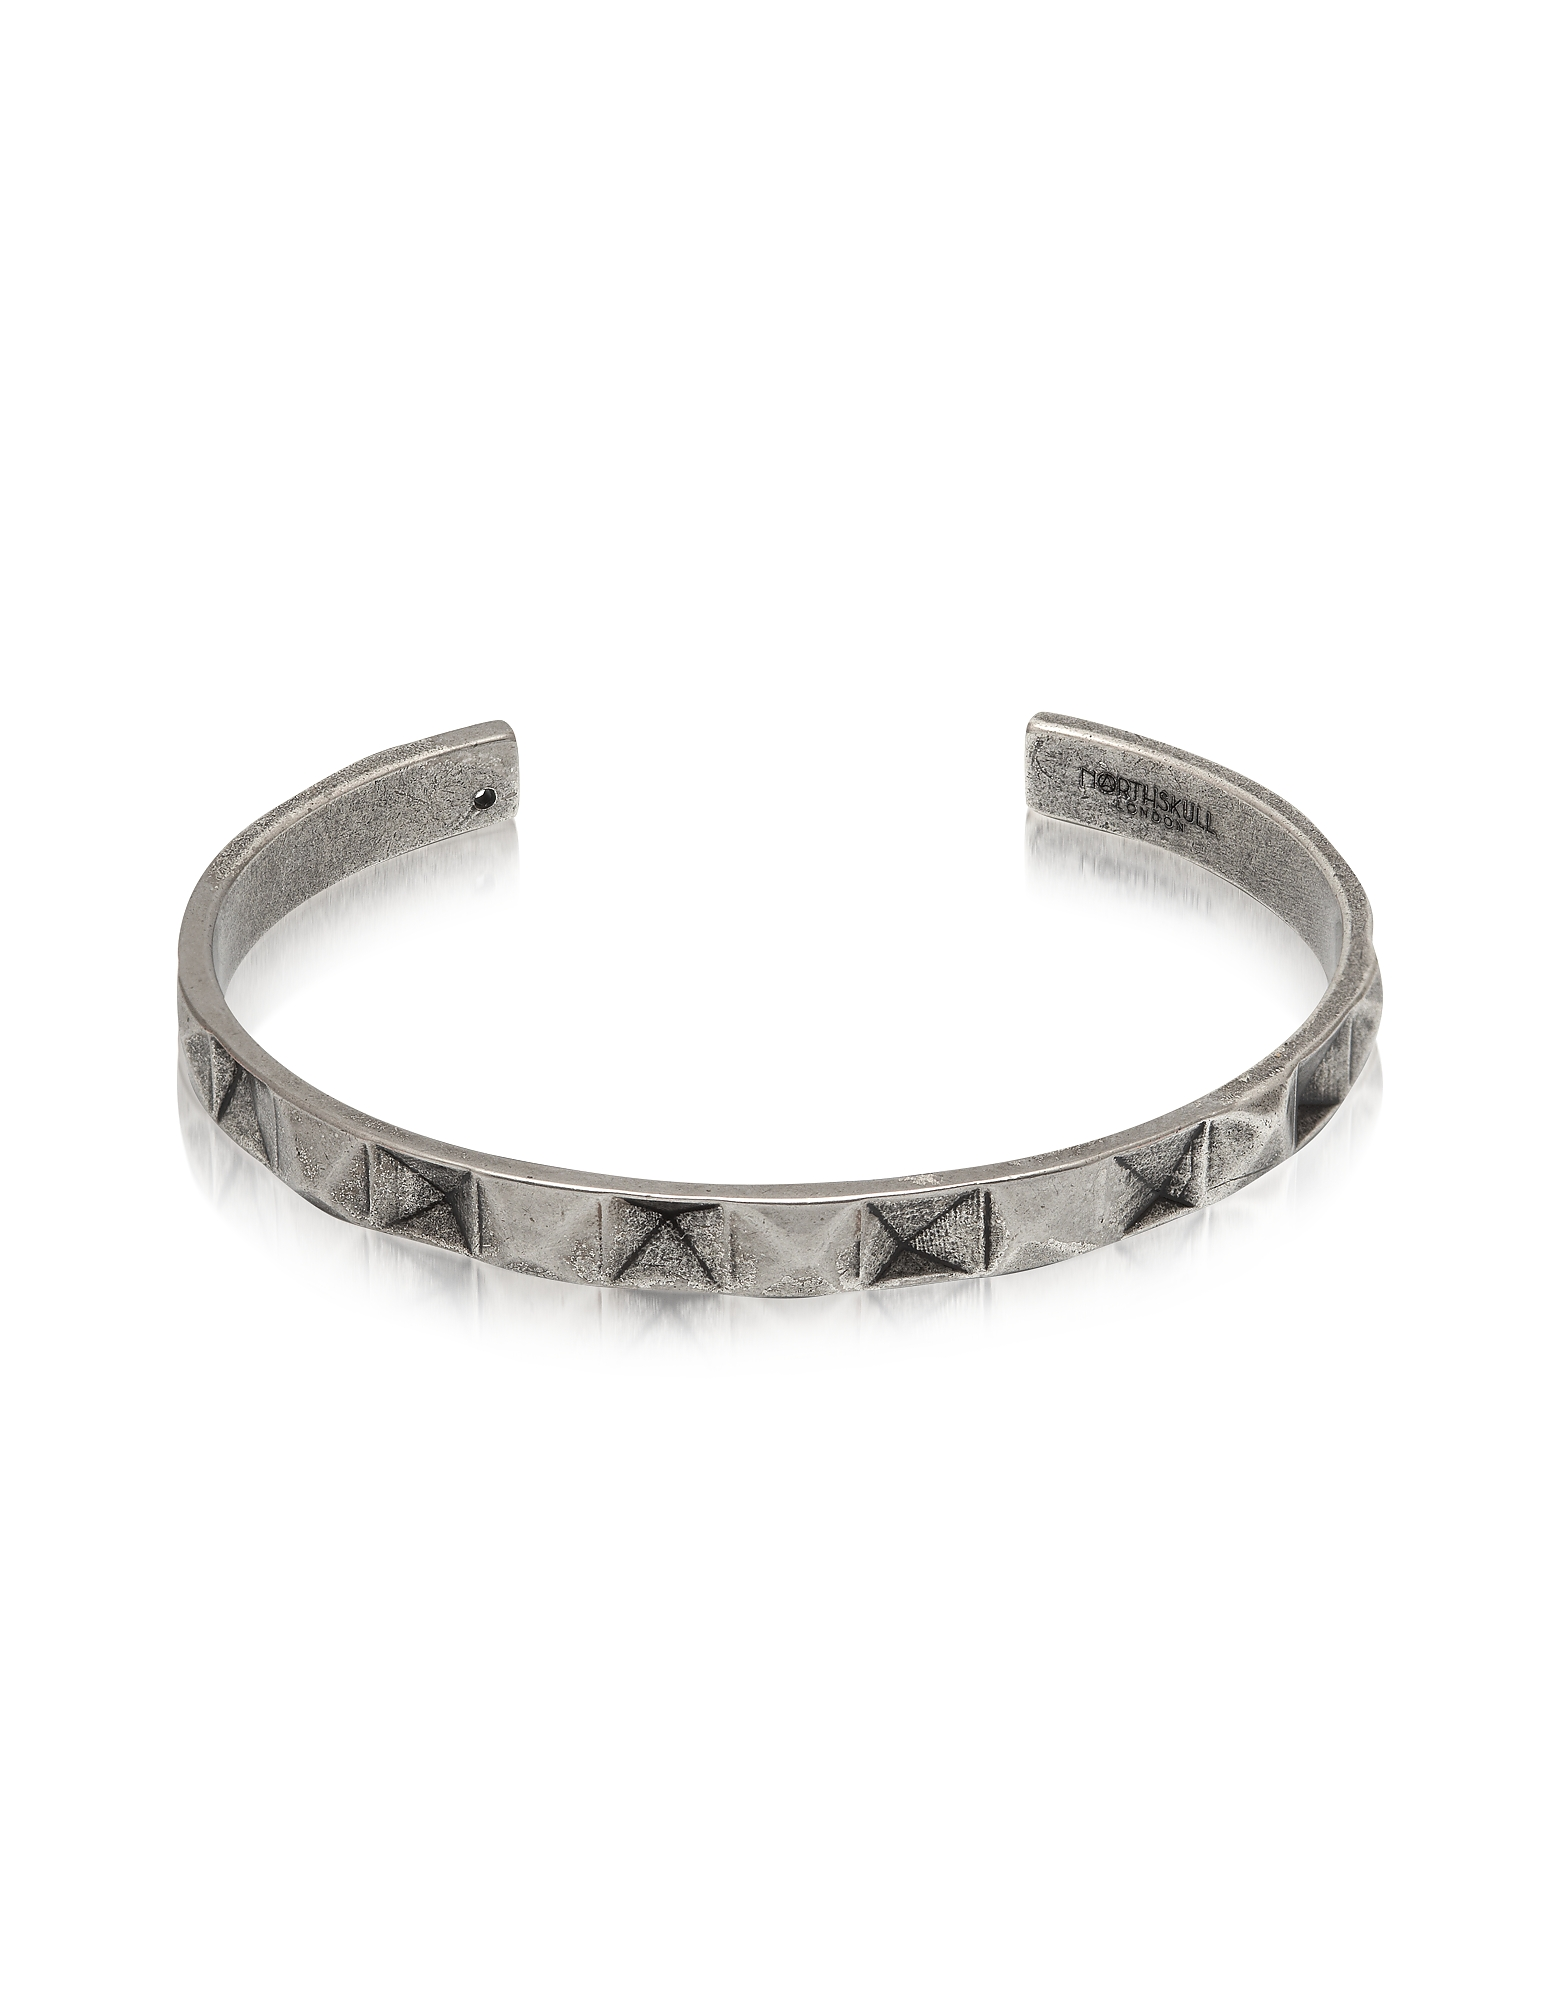 Northskull Men's Bracelets, In 'n' Out Aged 925 Silver Plated Brass Cuff